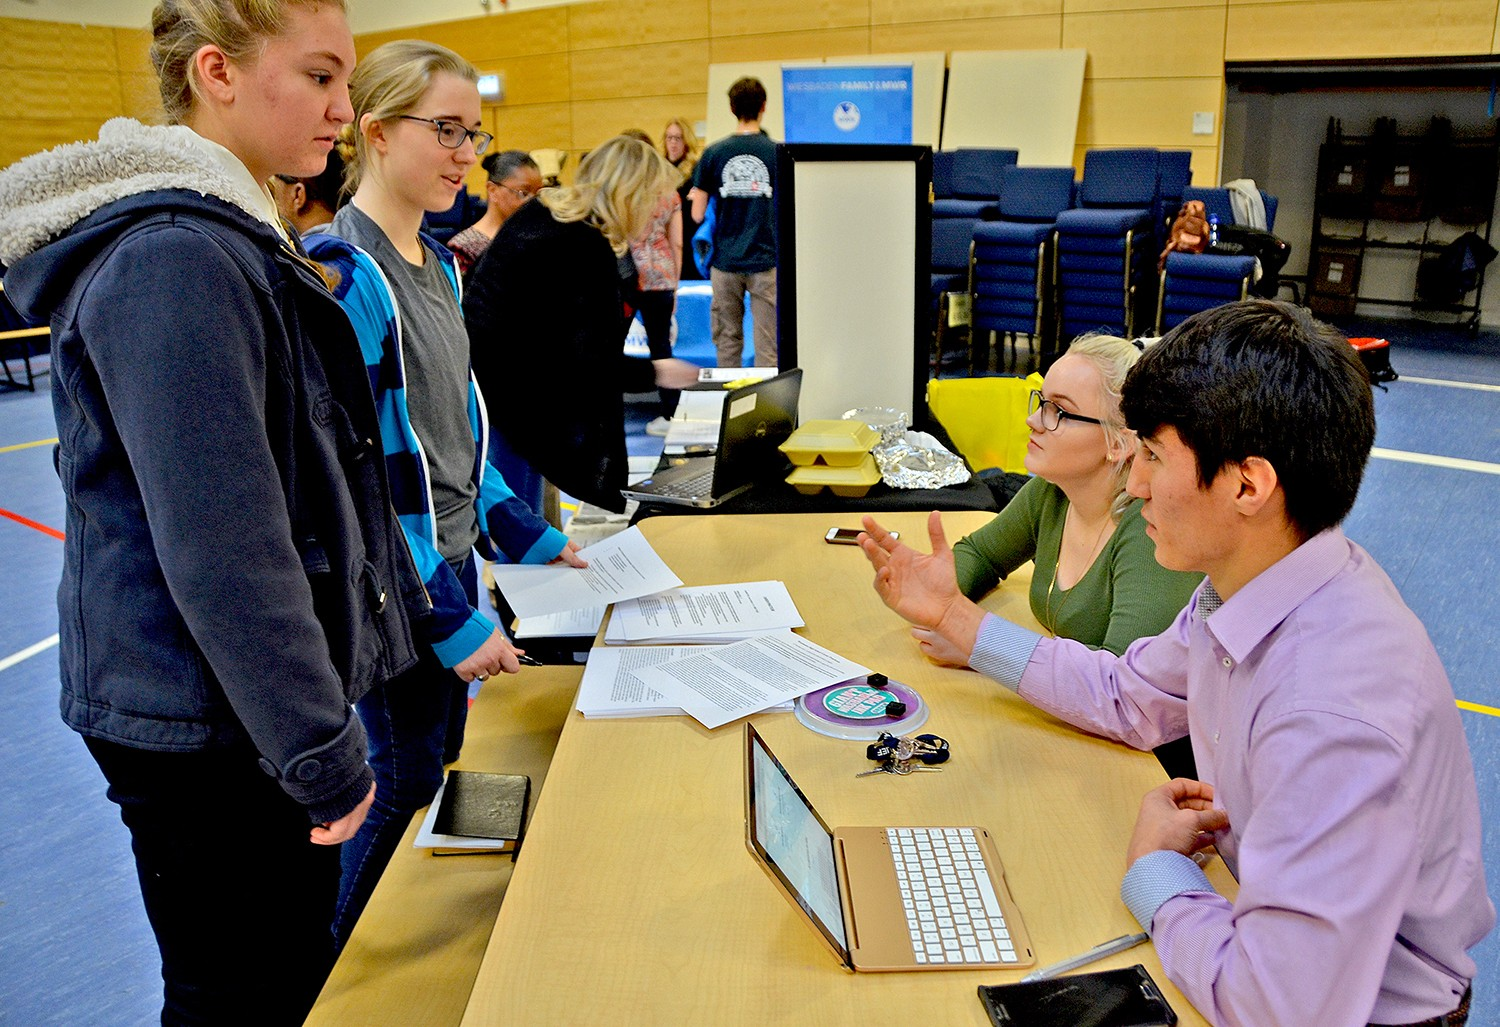 students explore options at youth job and volunteer expo article get information about the school s career practicum program from student interns aaron brown and darrin waterbury at the youth job and volunteer expo